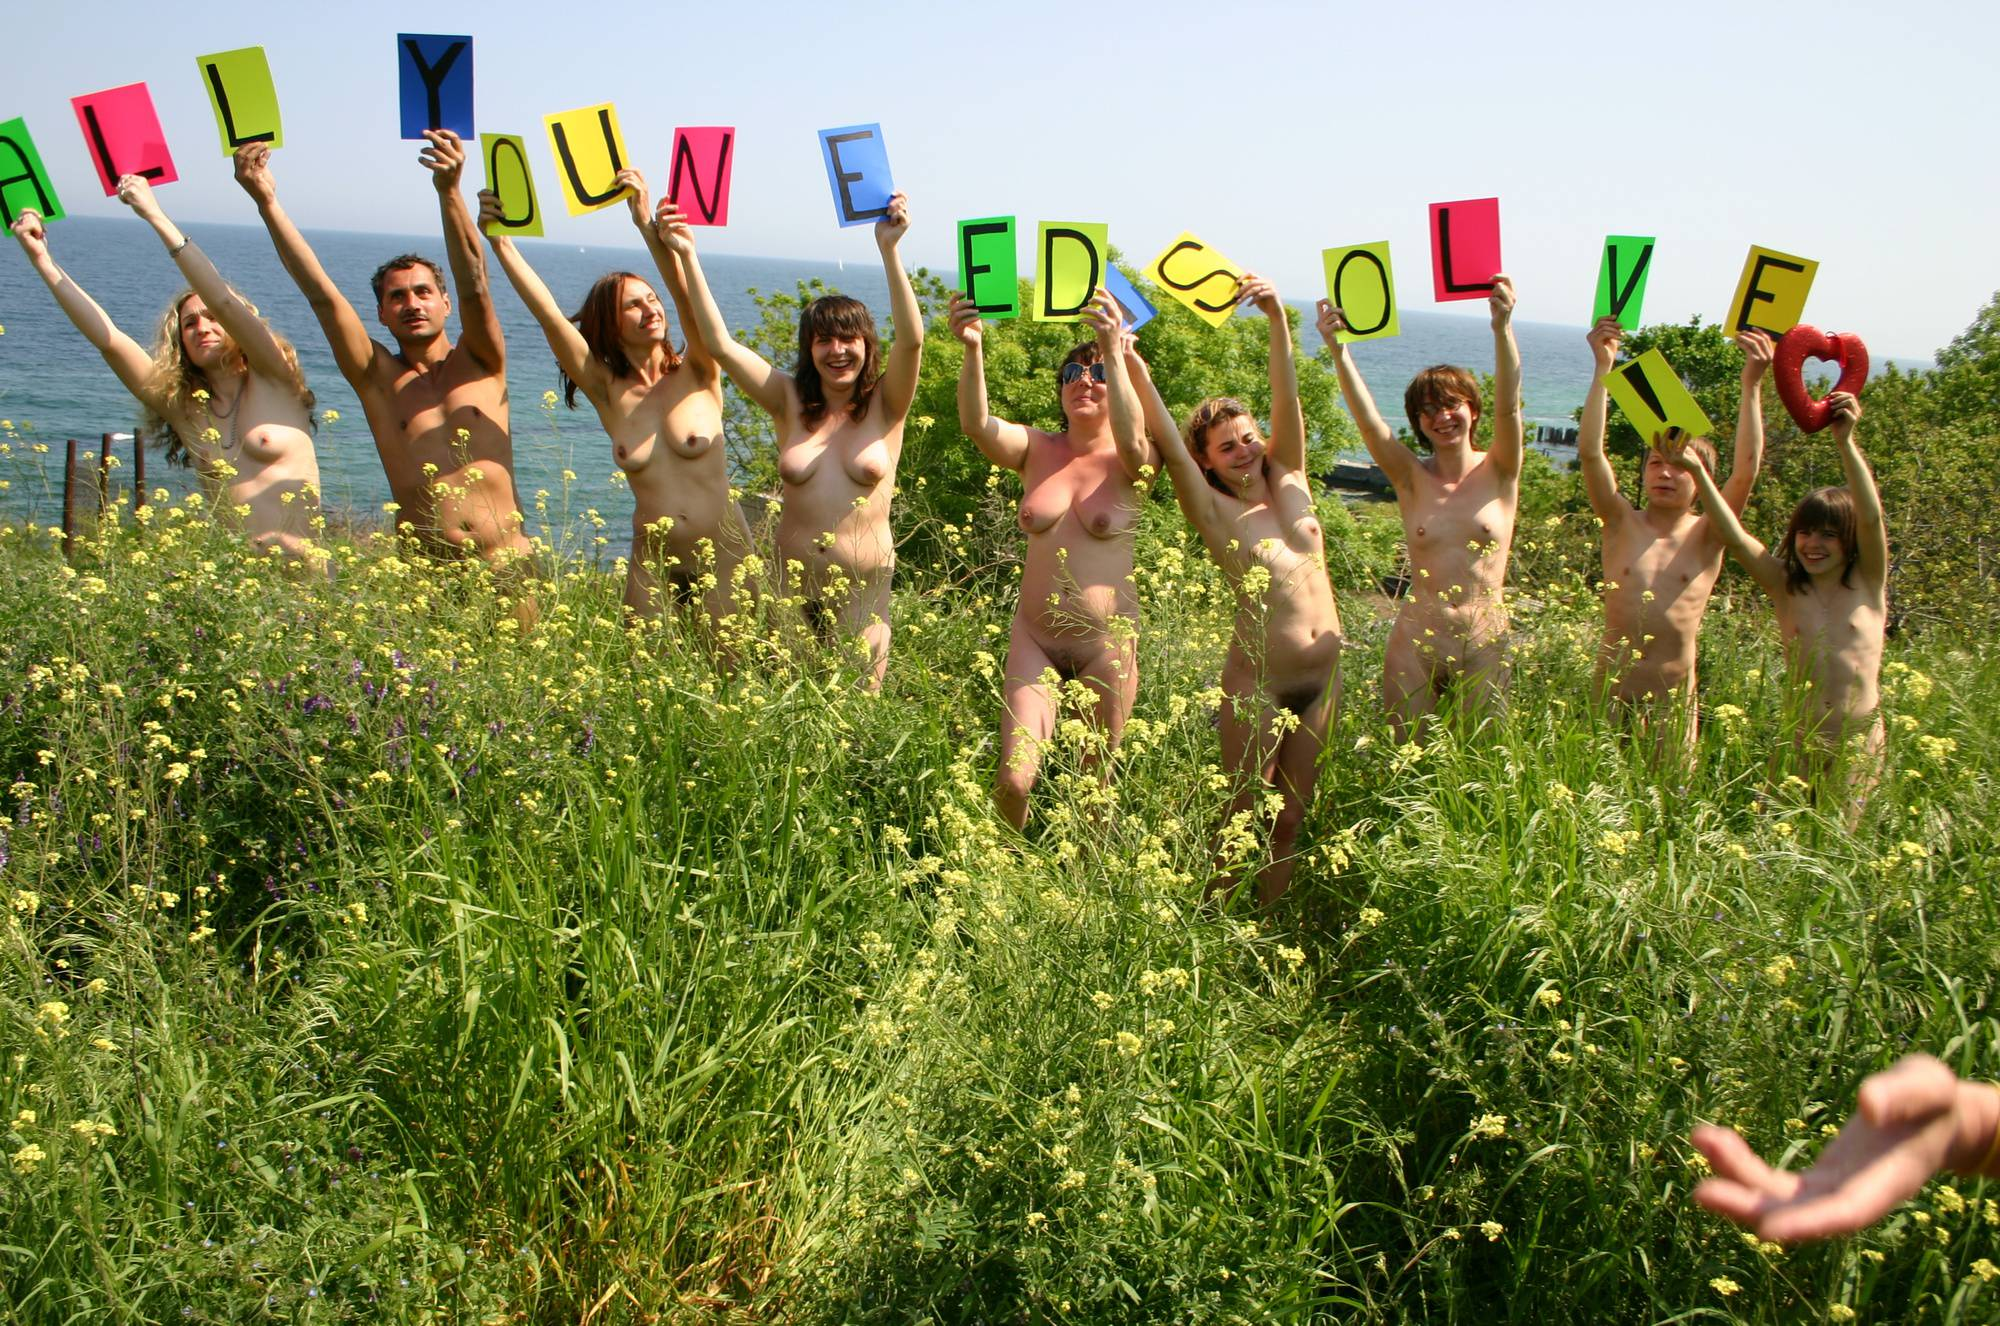 Colored Naturist Letters - 2